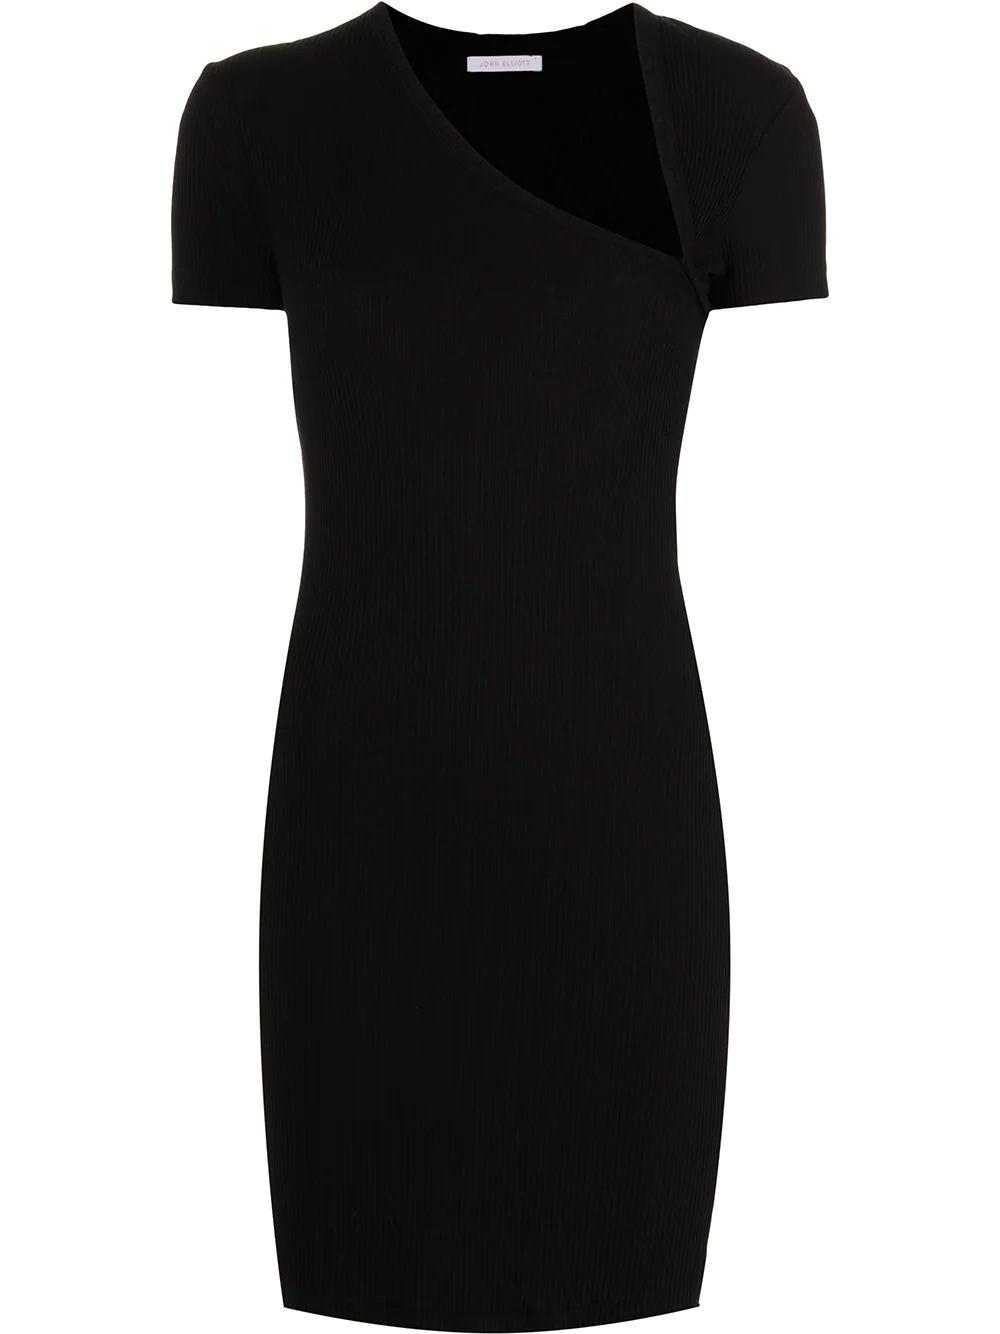 Asymmetrical Rib Knit Dress